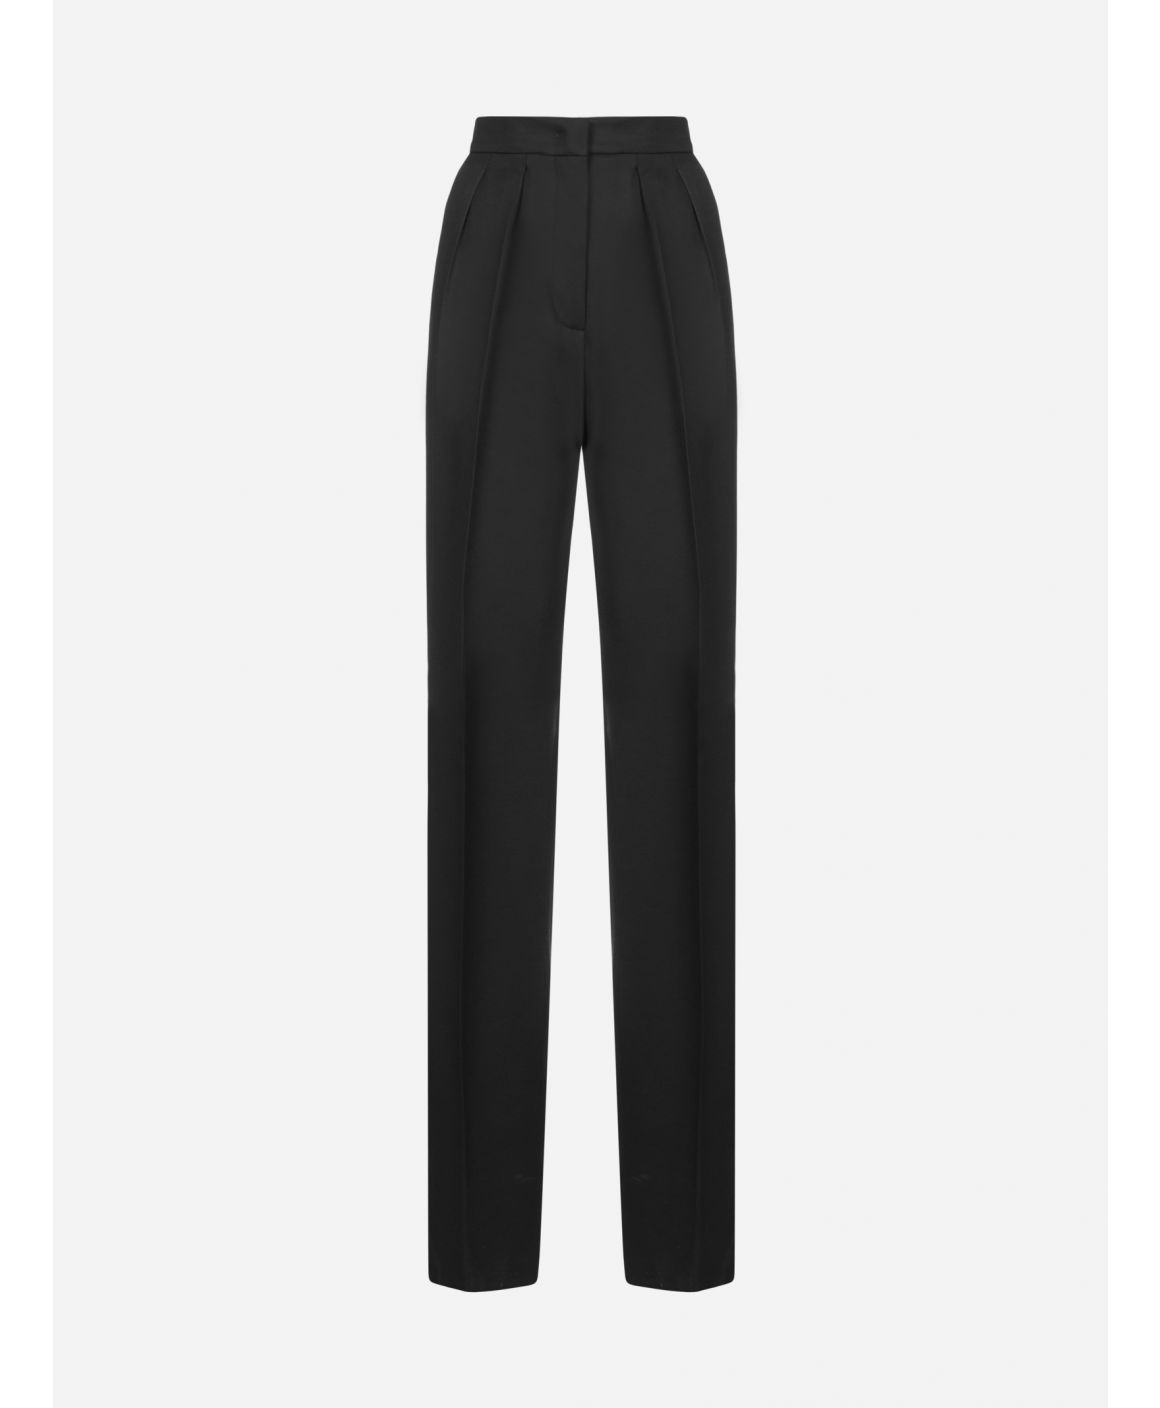 Ovale cotton and viscose trousers